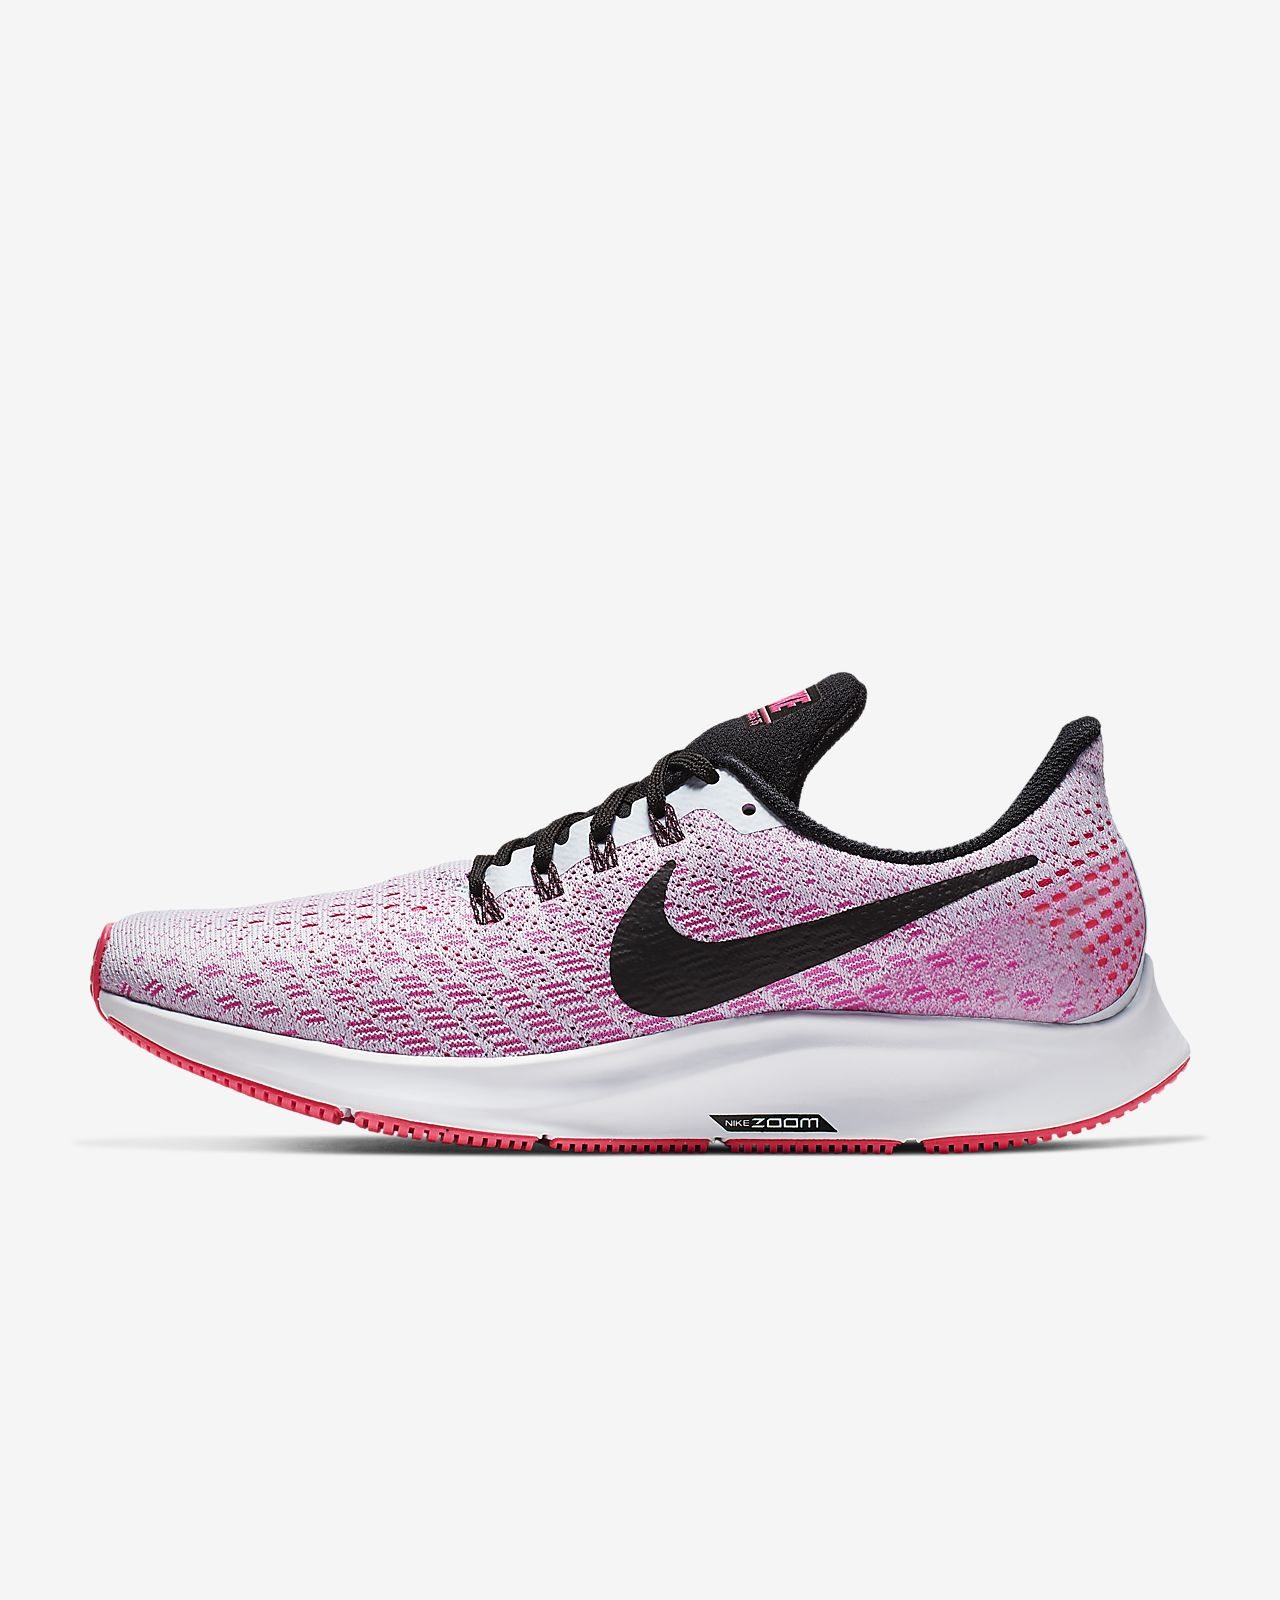 new product 30ceb 94489 ... Chaussure de running Nike Air Zoom Pegasus 35 pour Femme